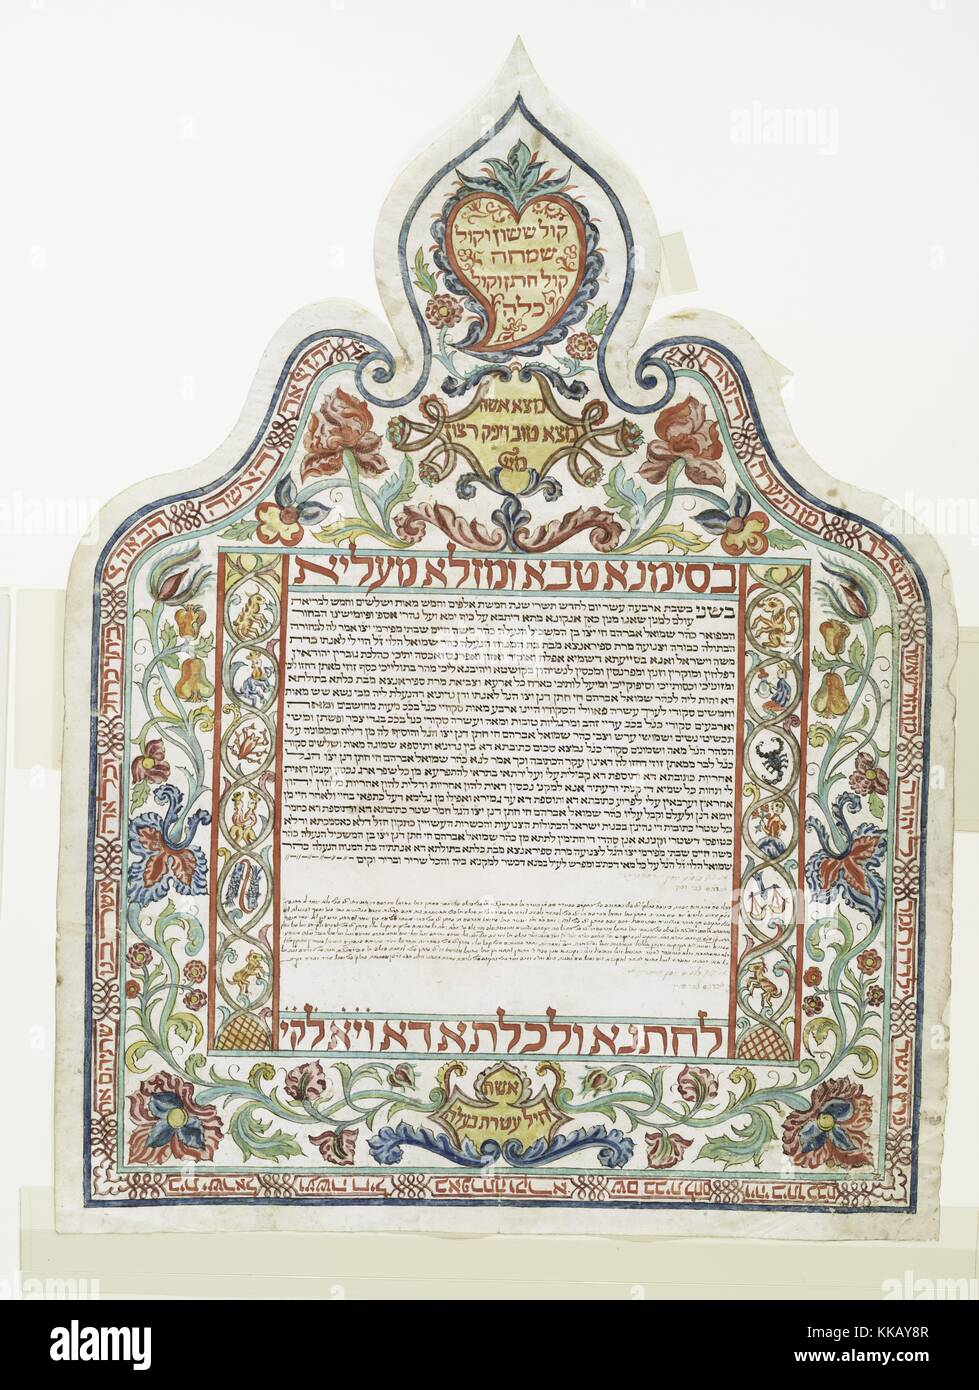 An ornately decorated Ketubah, which is a form of marriage agreement in Jewish religious tradition, Ancona, Italy, - Stock Image